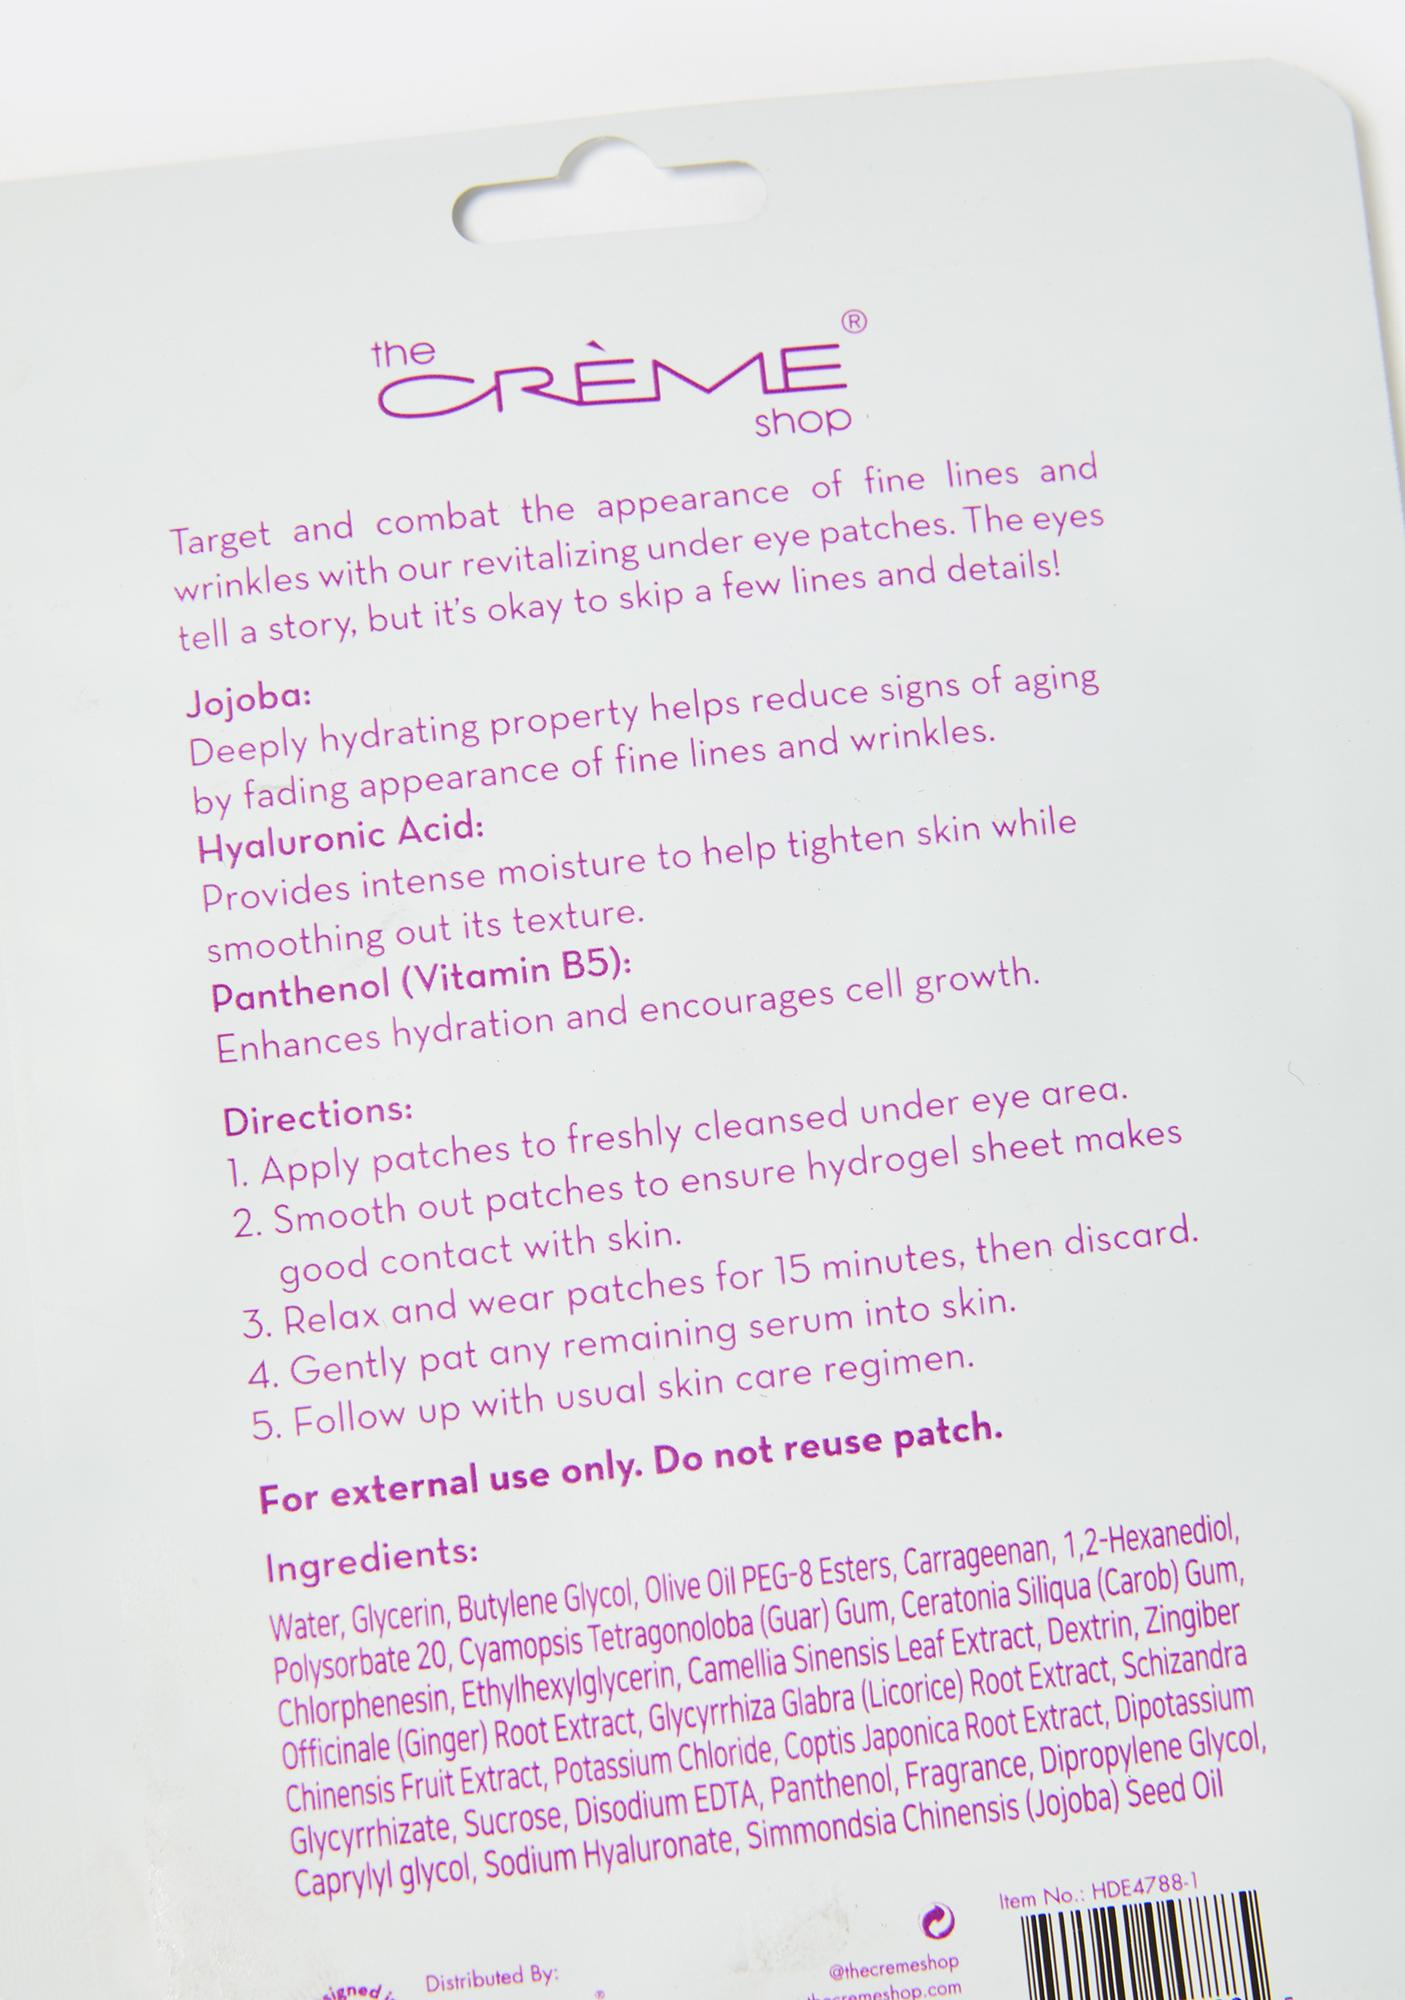 The Crème Shop How Do Eye Look Vibrant Eye Patches